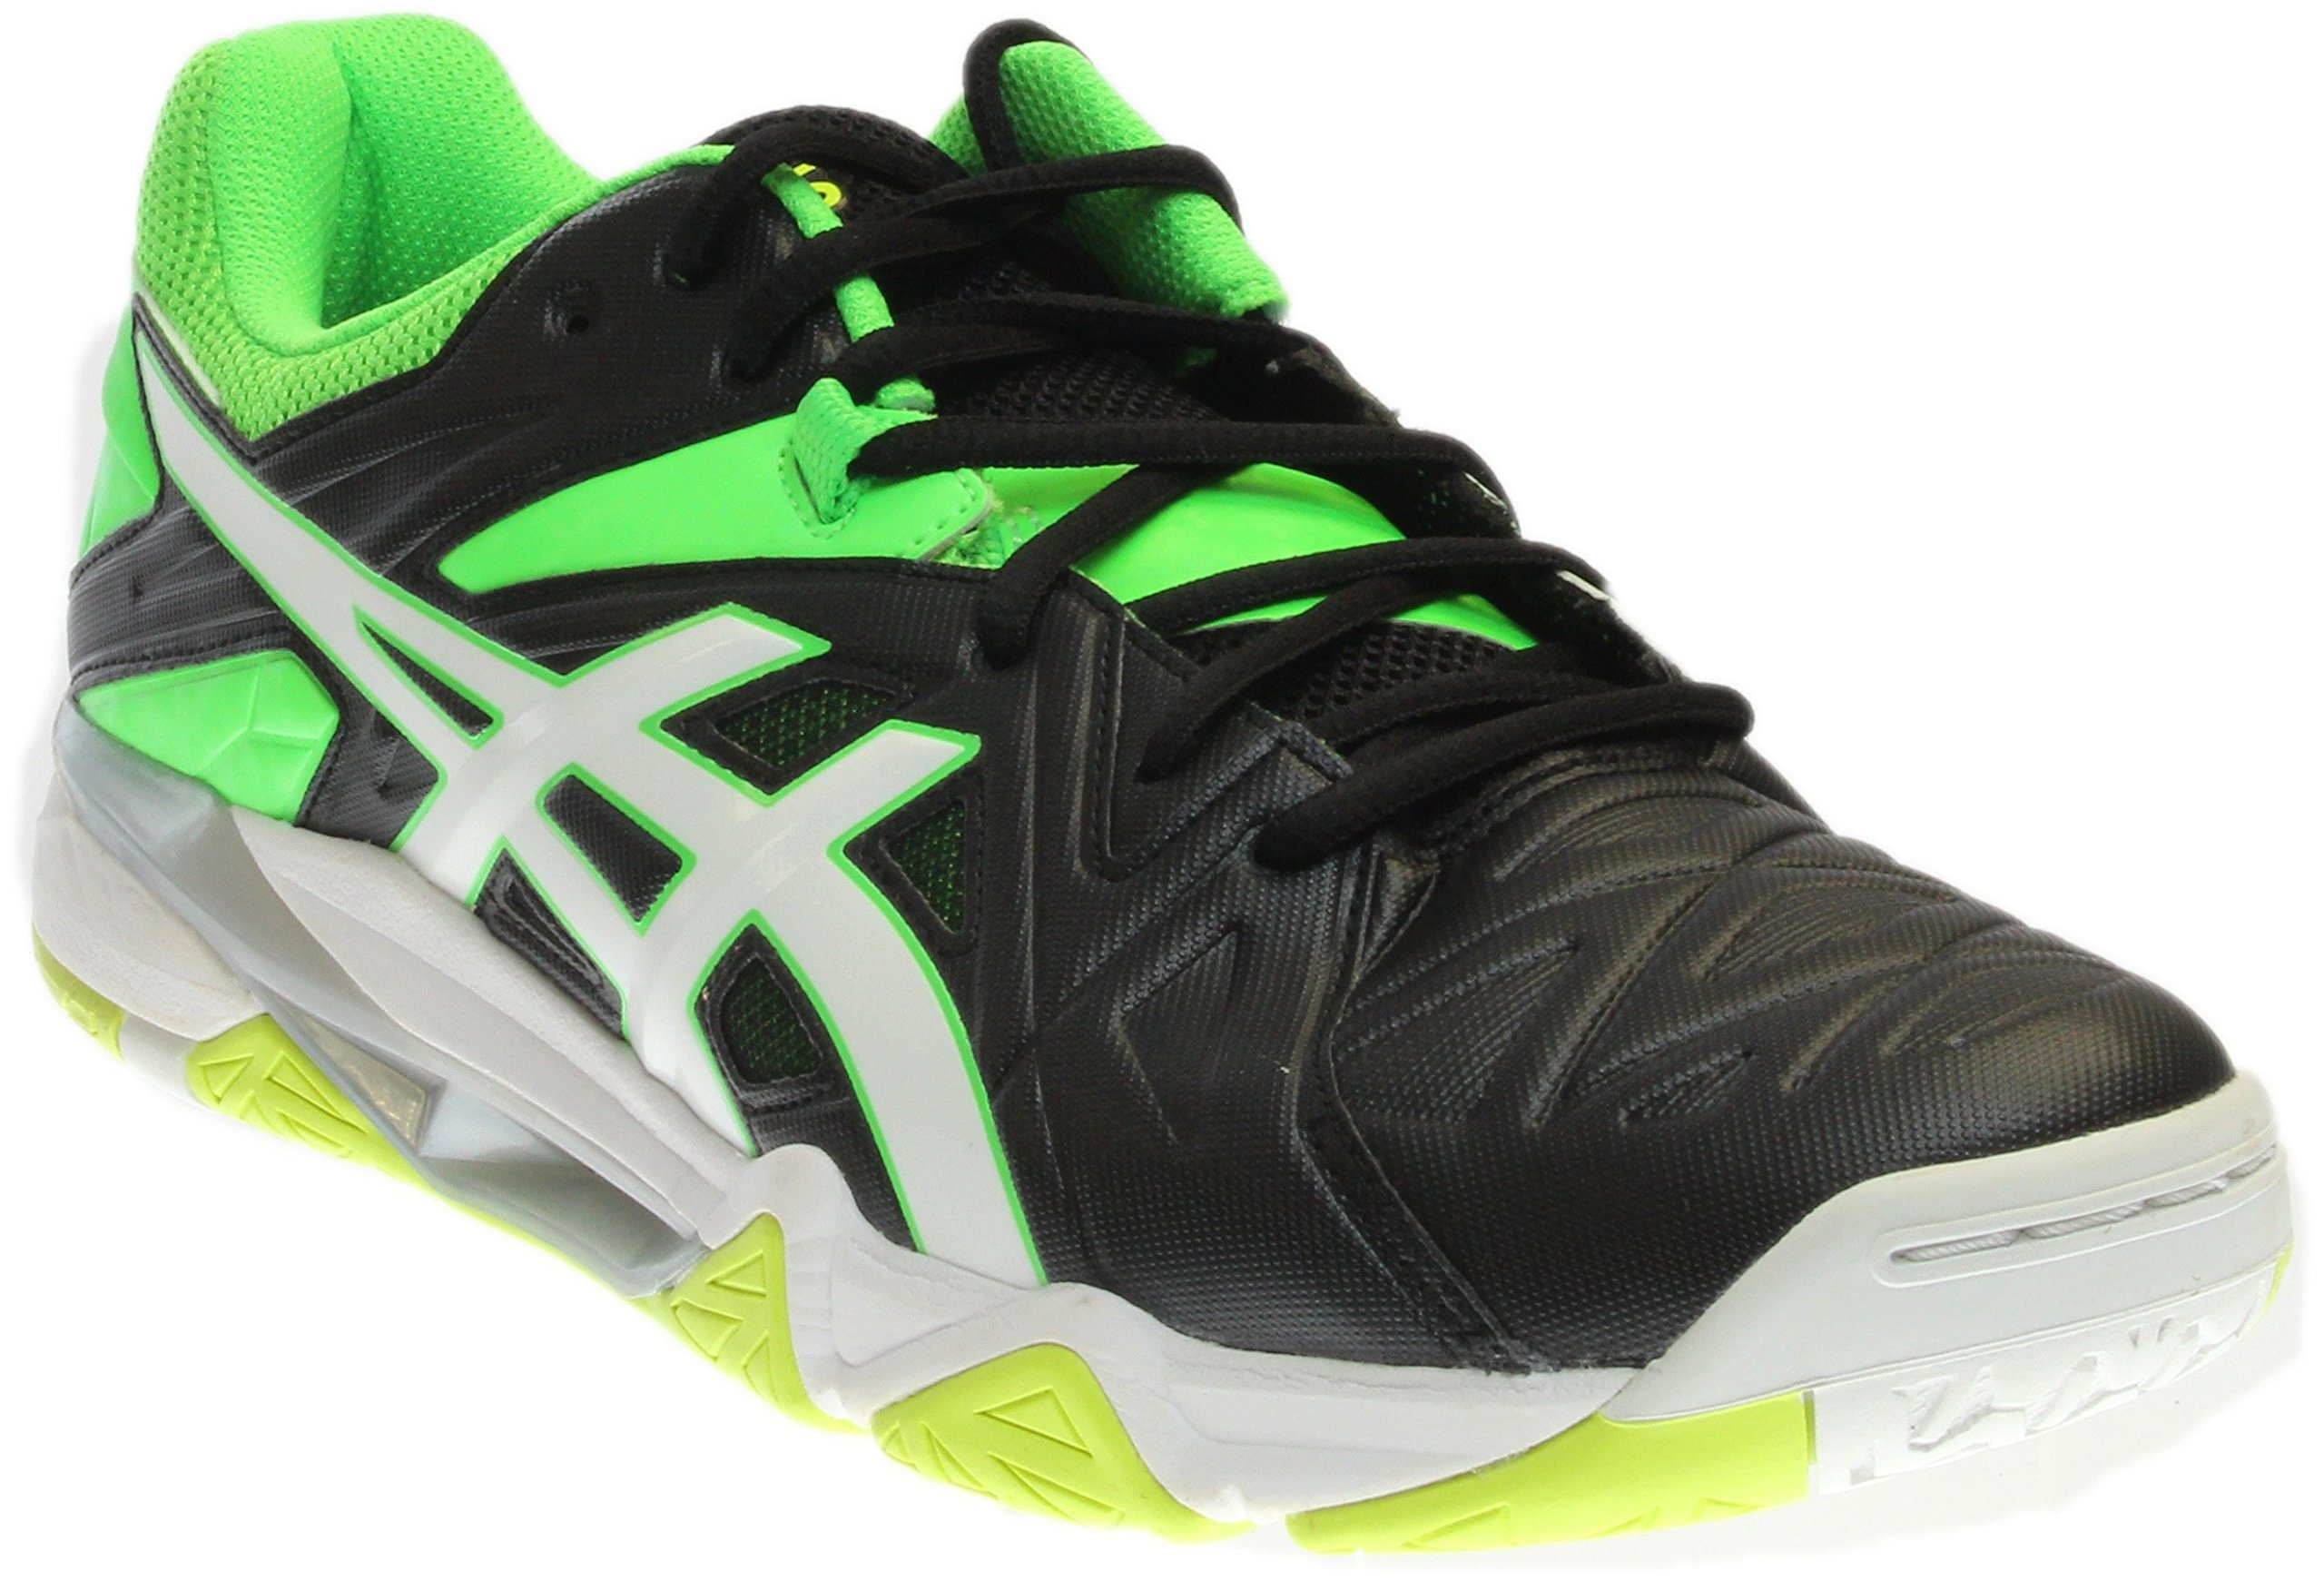 ASICS Men's Gel-Cyber Sensei Volleyball Shoe, Black/White/Green Gecko, 13 M US by ASICS